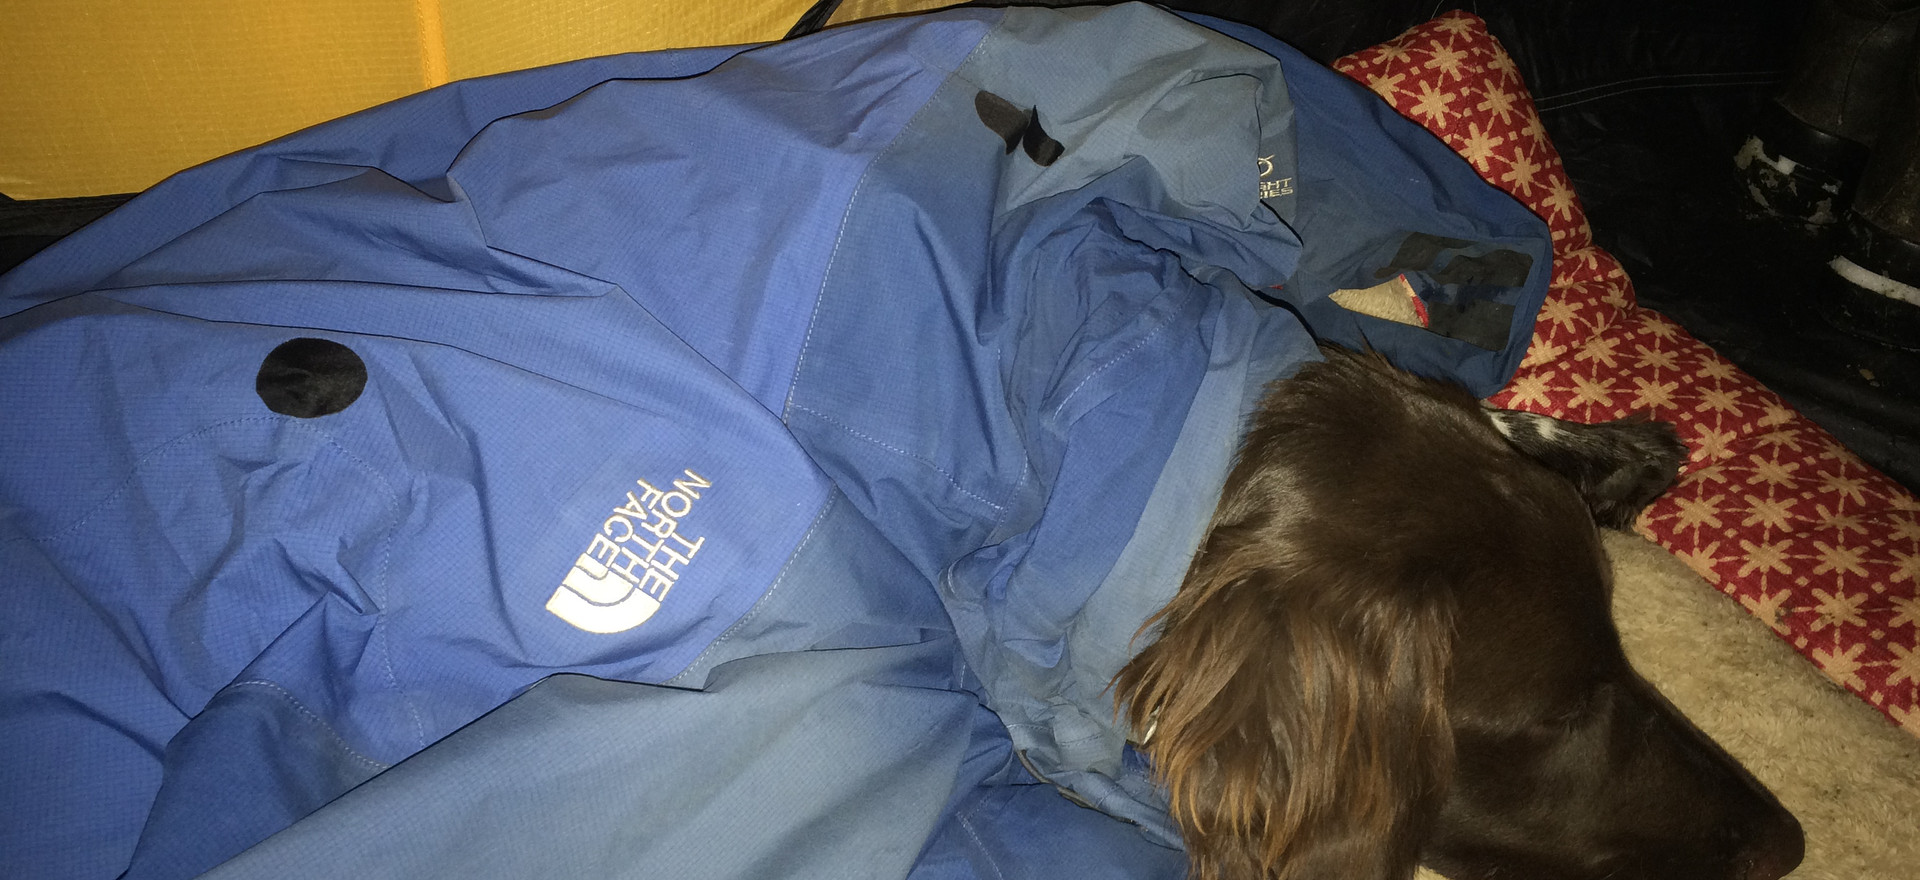 Modeling for North Face in the tent by night...